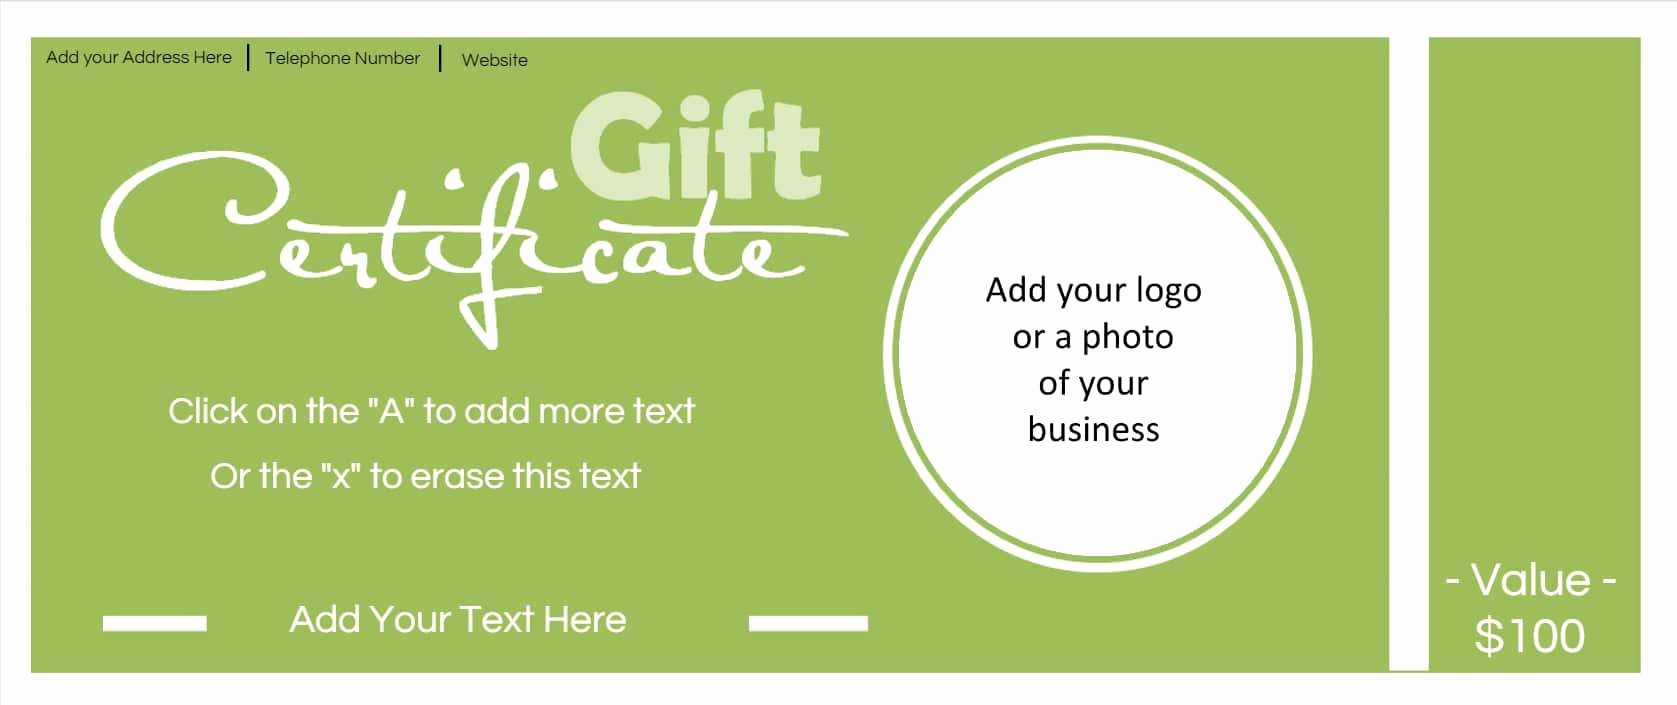 Gift Certificate Samples Free Templates Awesome Gift Certificate Template with Logo